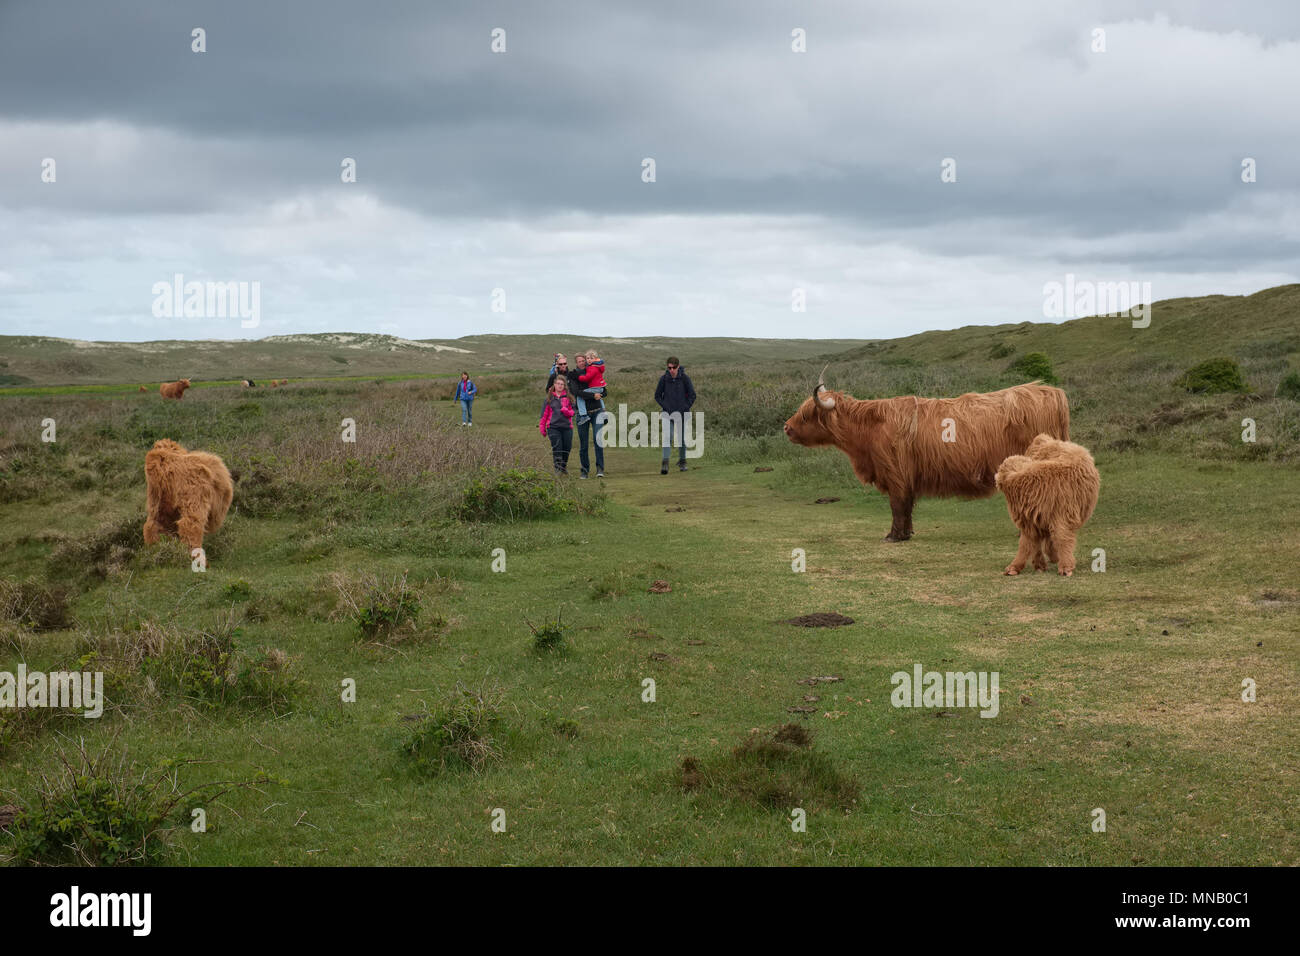 Illustration shows Scottish Highland cows in the Dunes of Texel in the Netherlands. - Stock Image